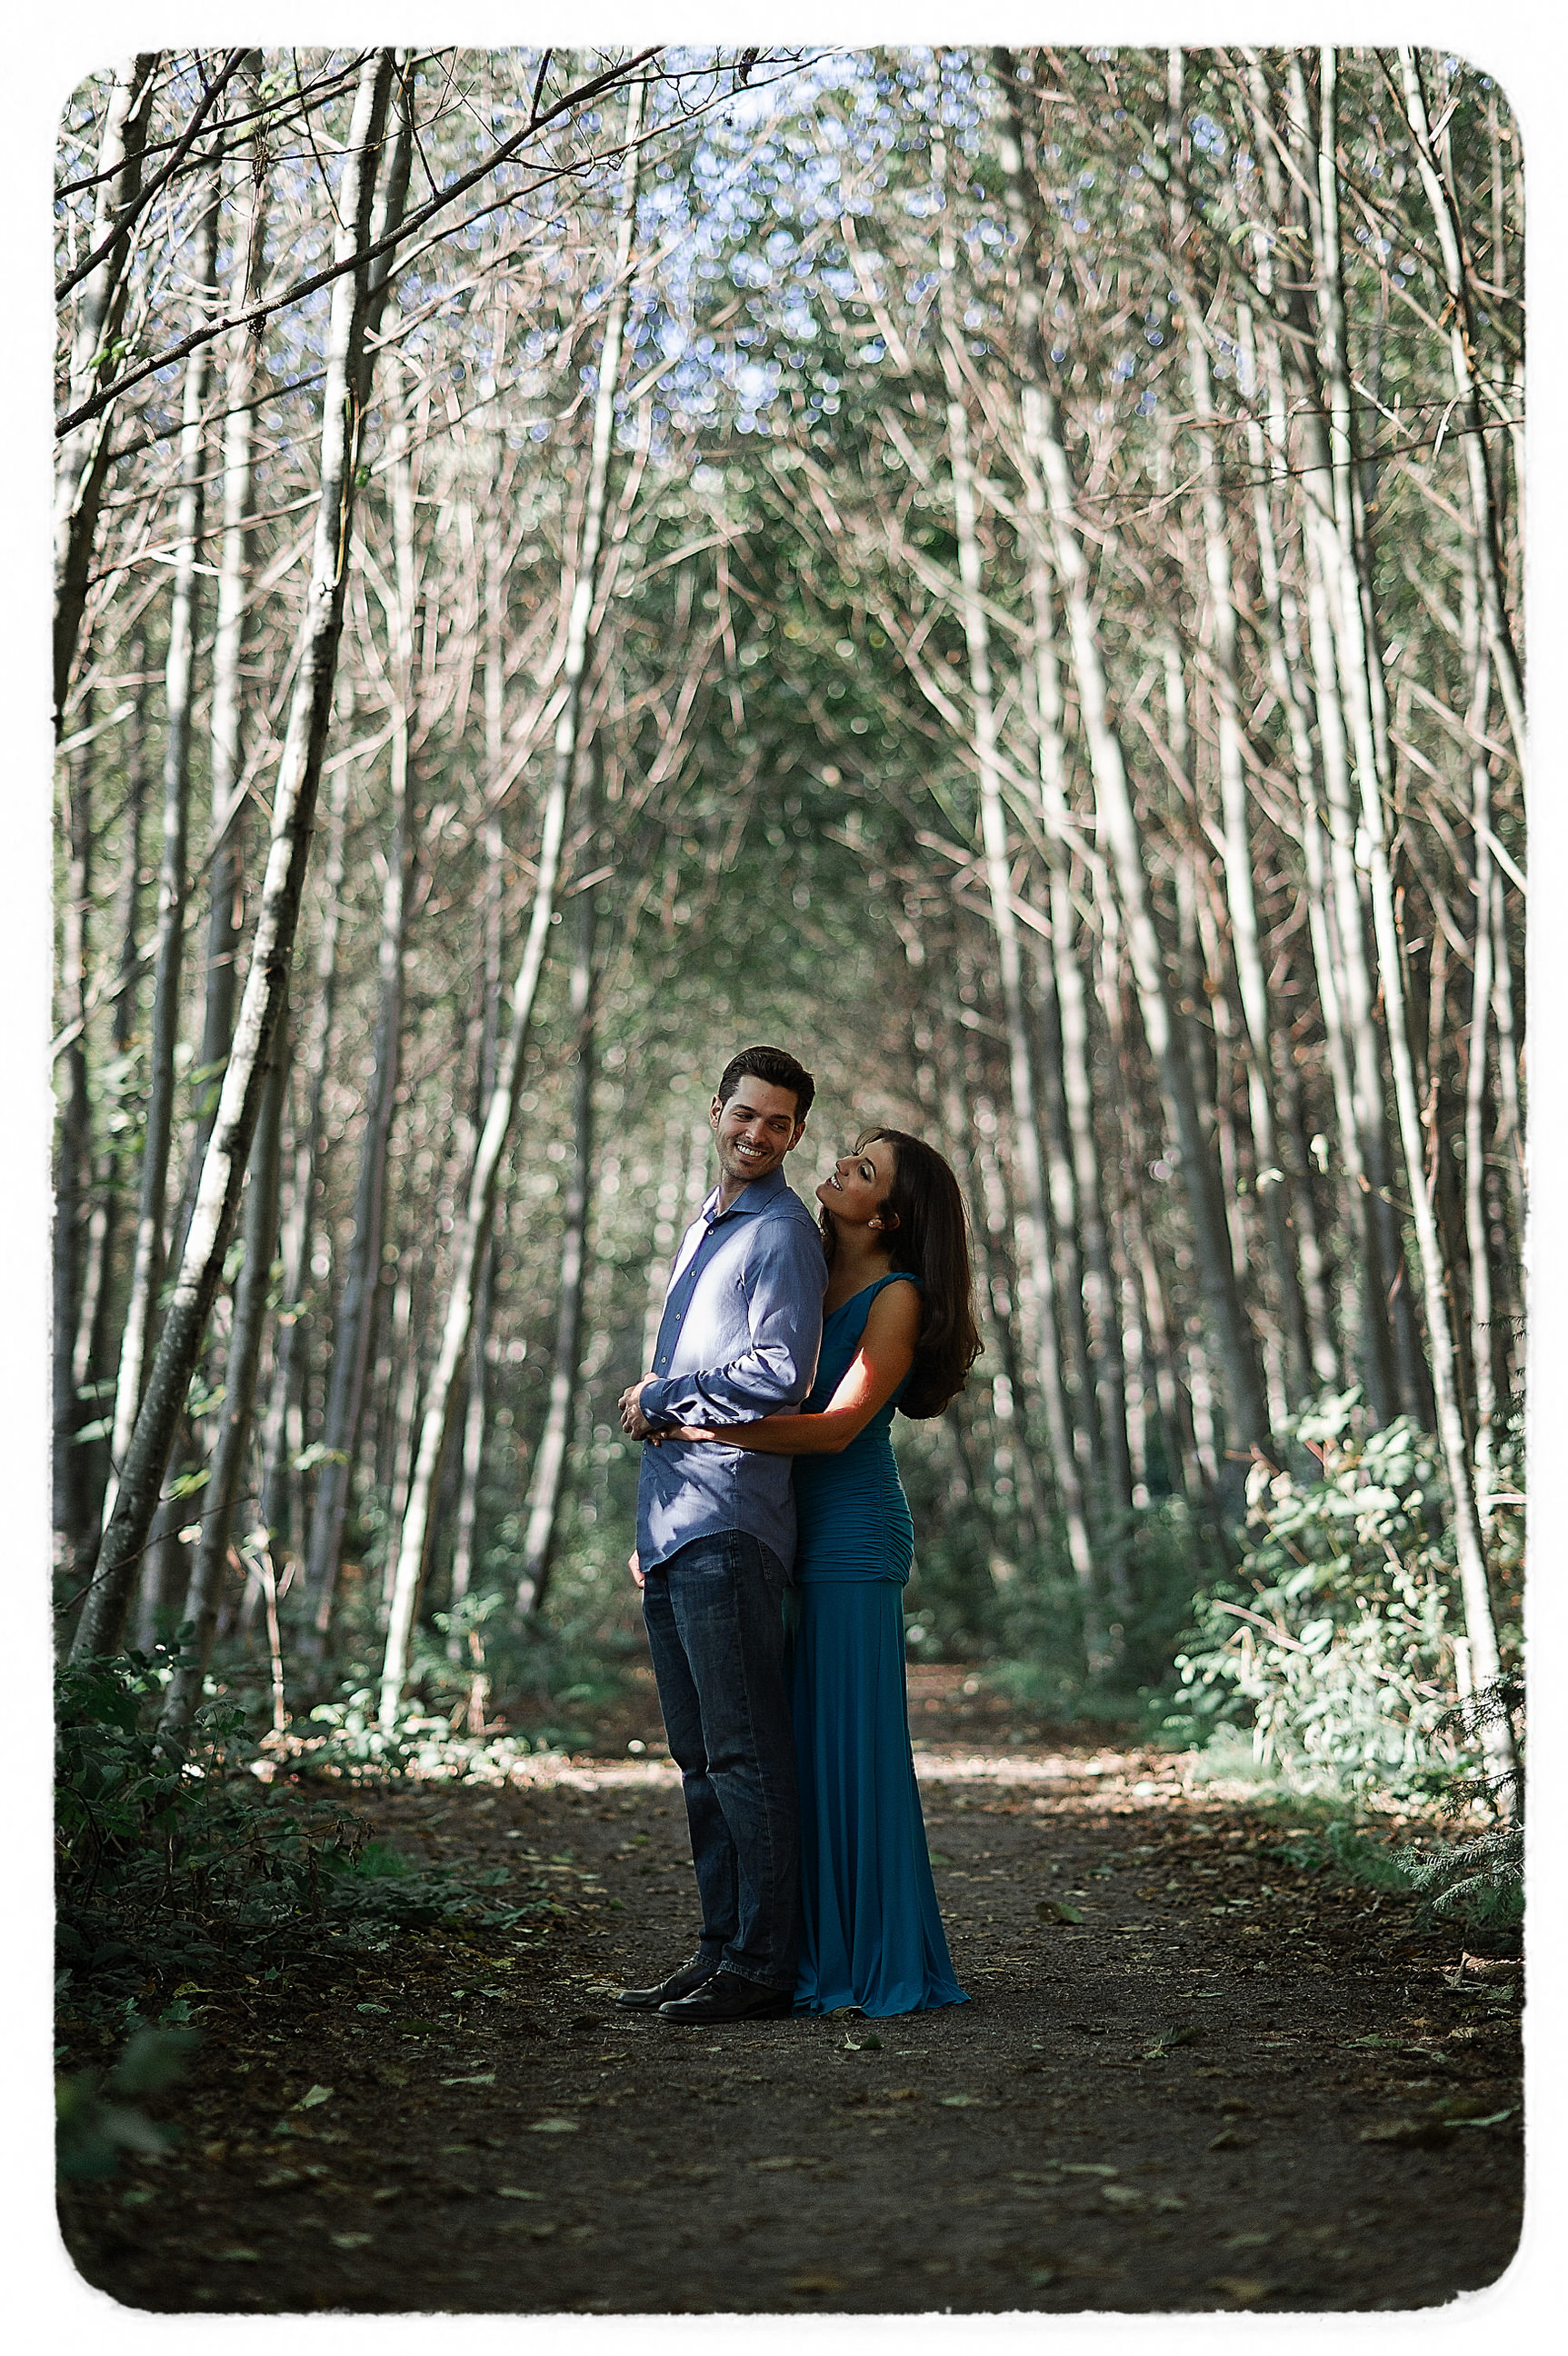 Kelly&Mike-EngagementSession-OriginalCollection-24Film.jpg